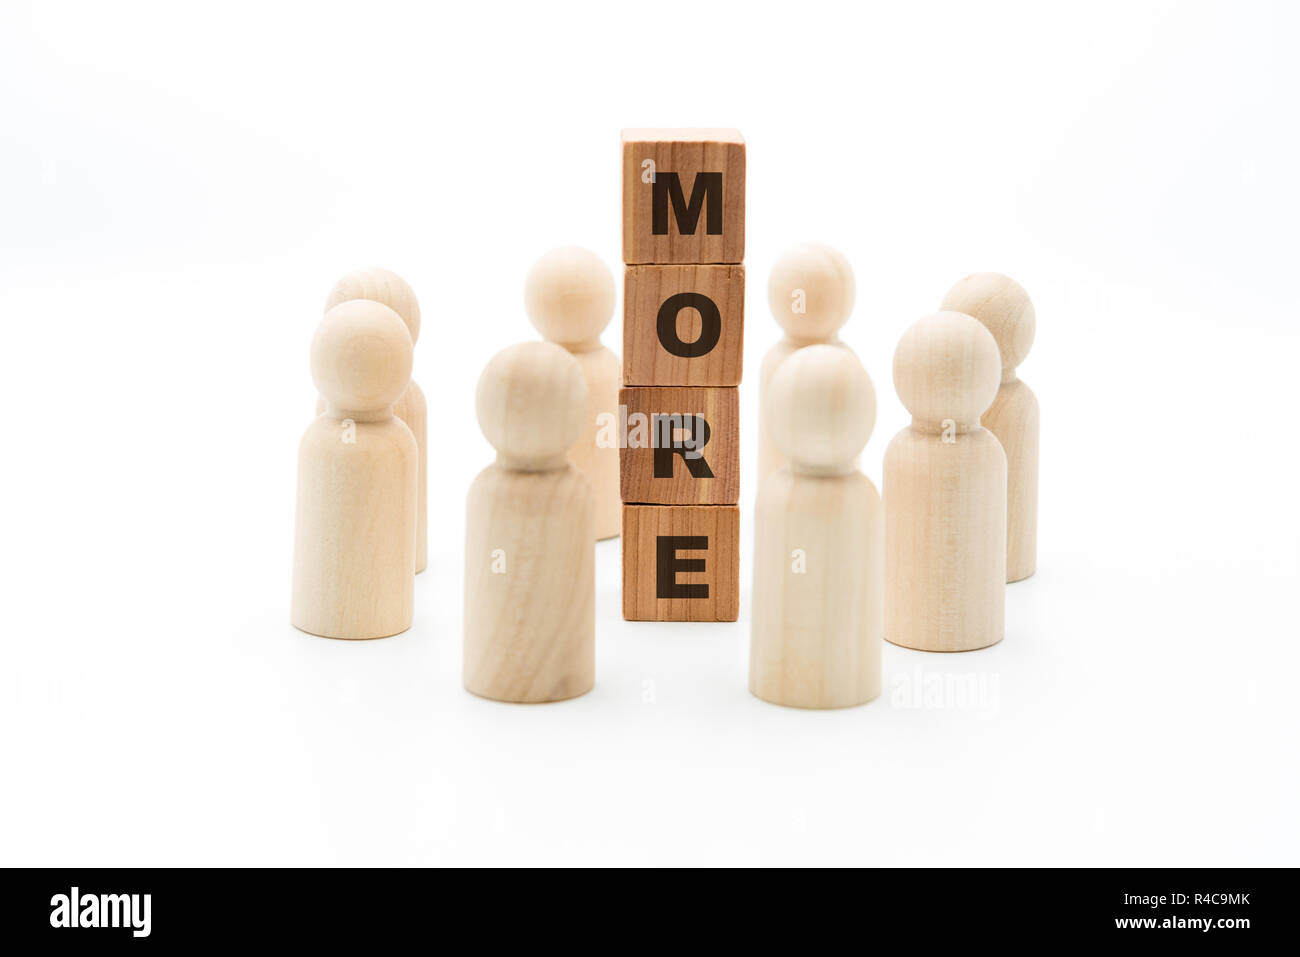 Wooden figures as business team in circle around word MORE, isolated on white background, minimalist concept - Stock Image